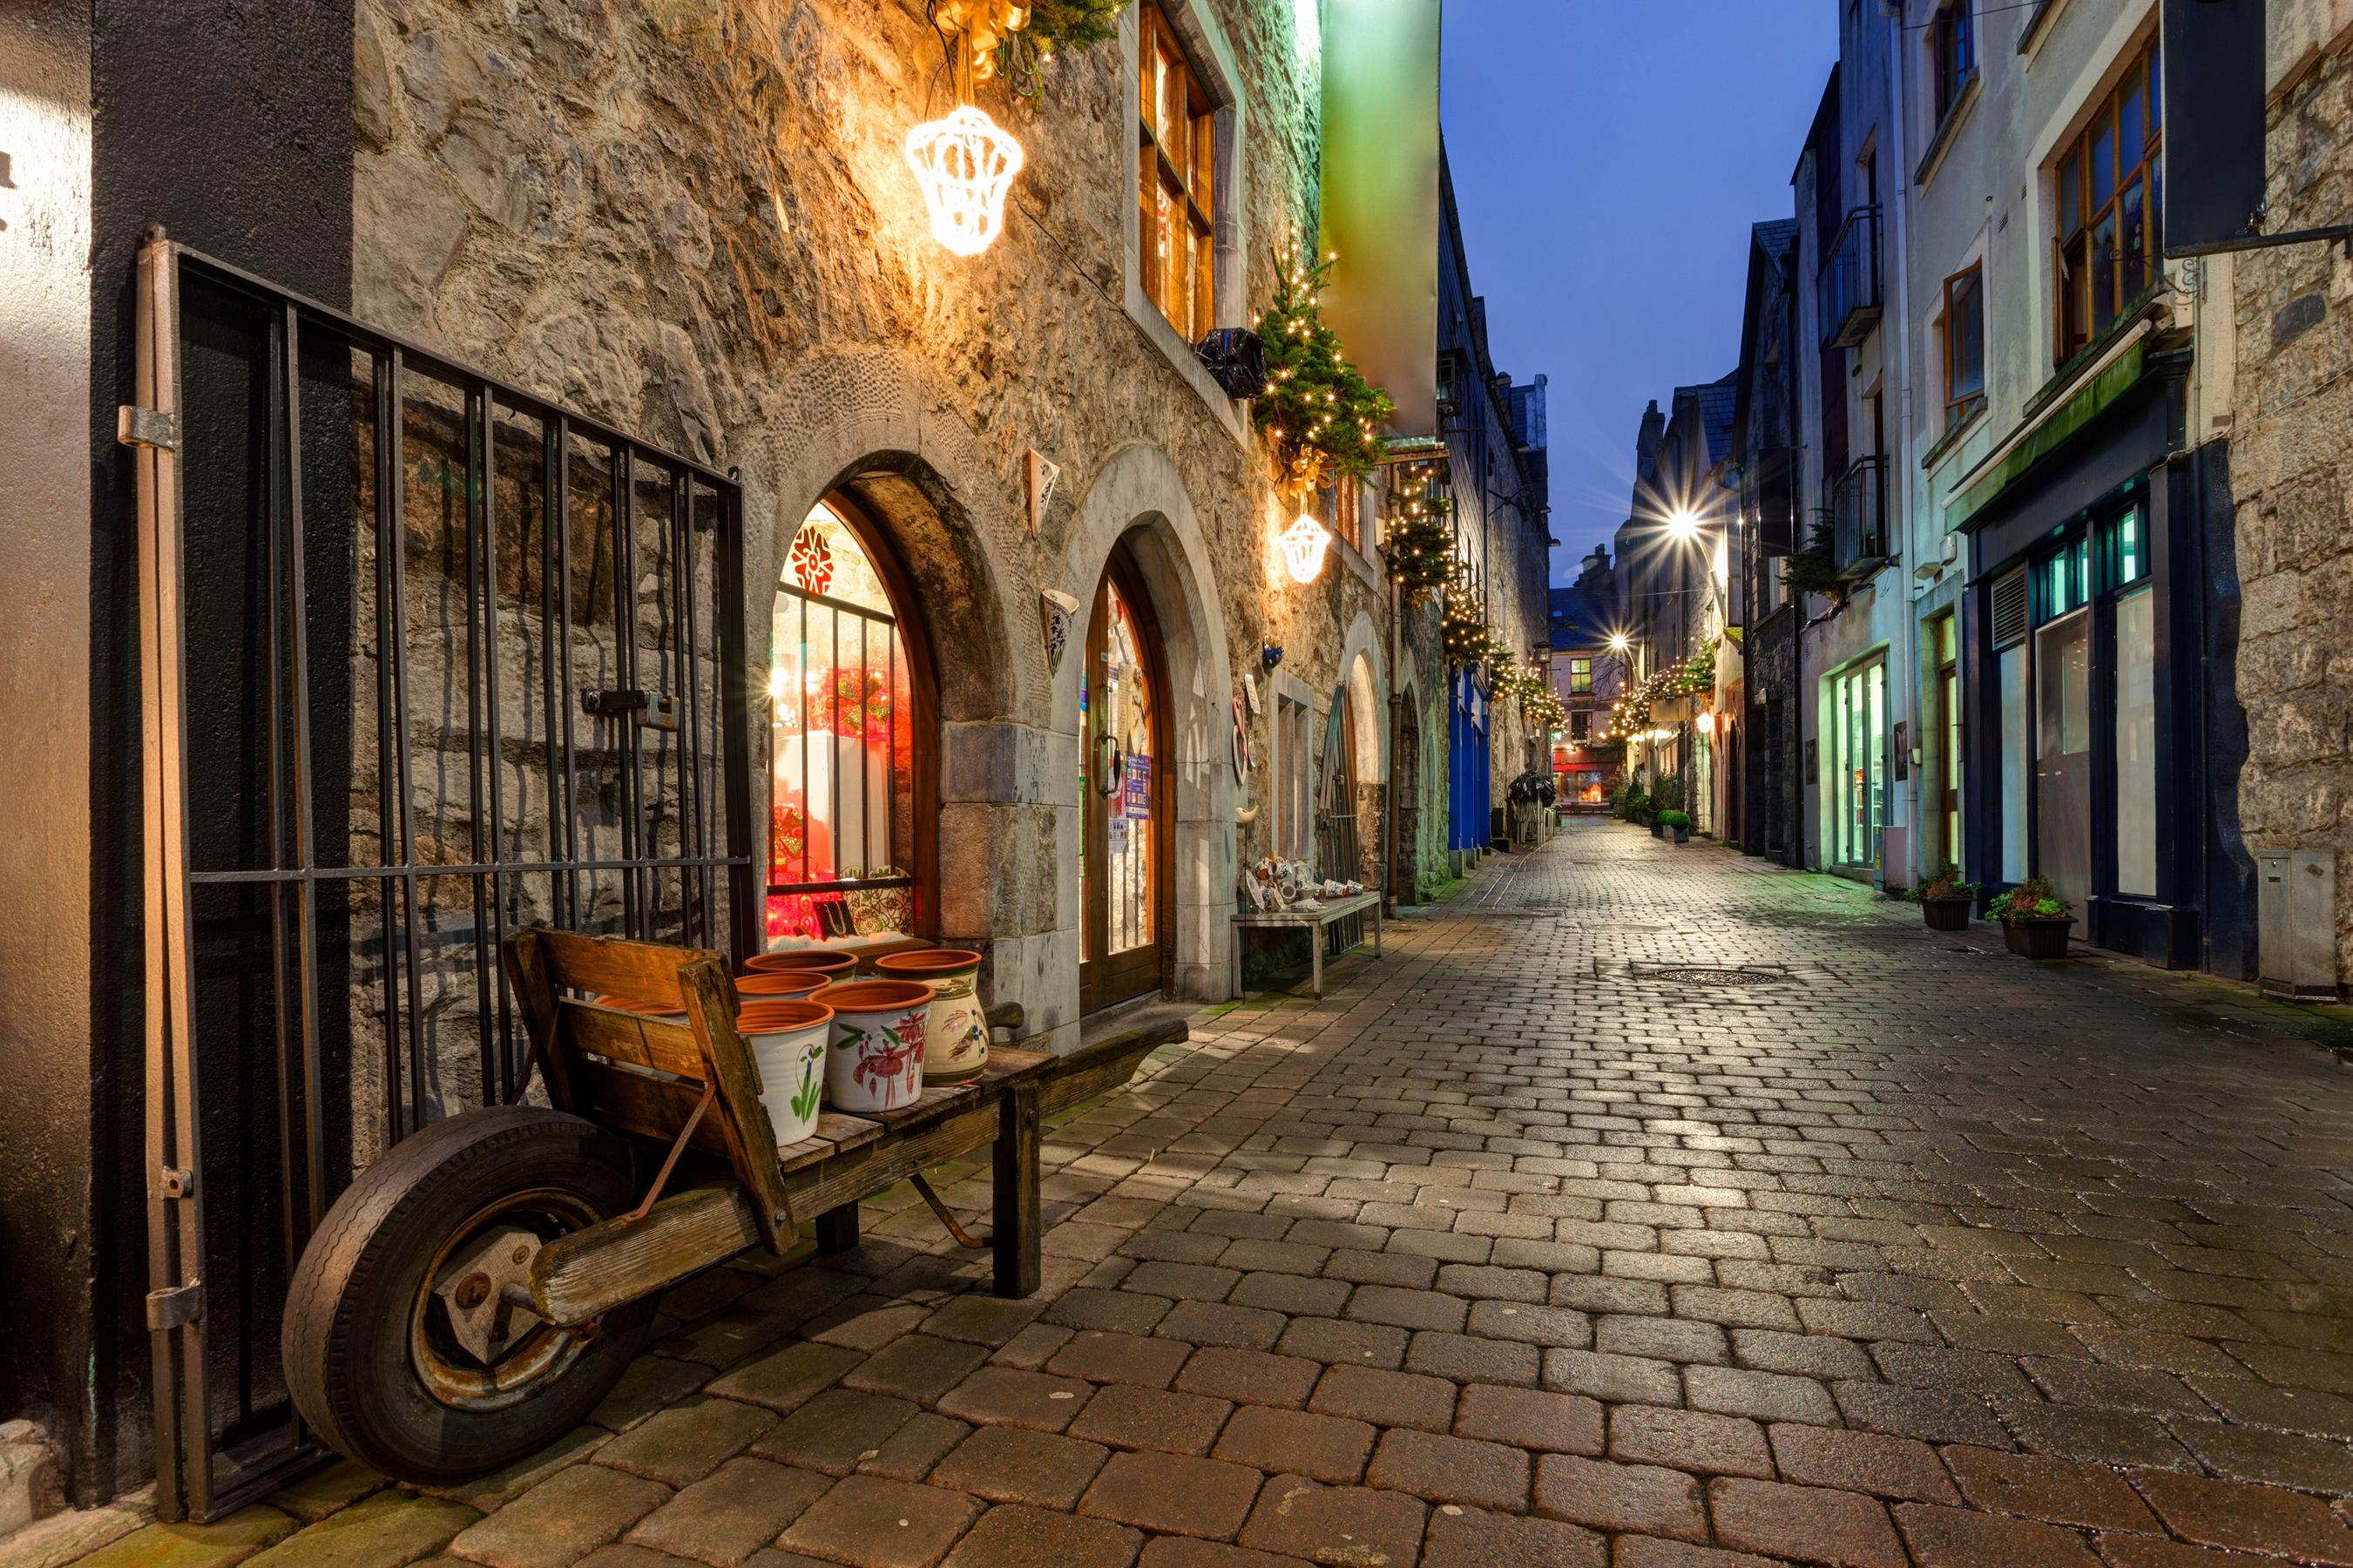 Hotels in County Clare, Galway, and the Aran Islands